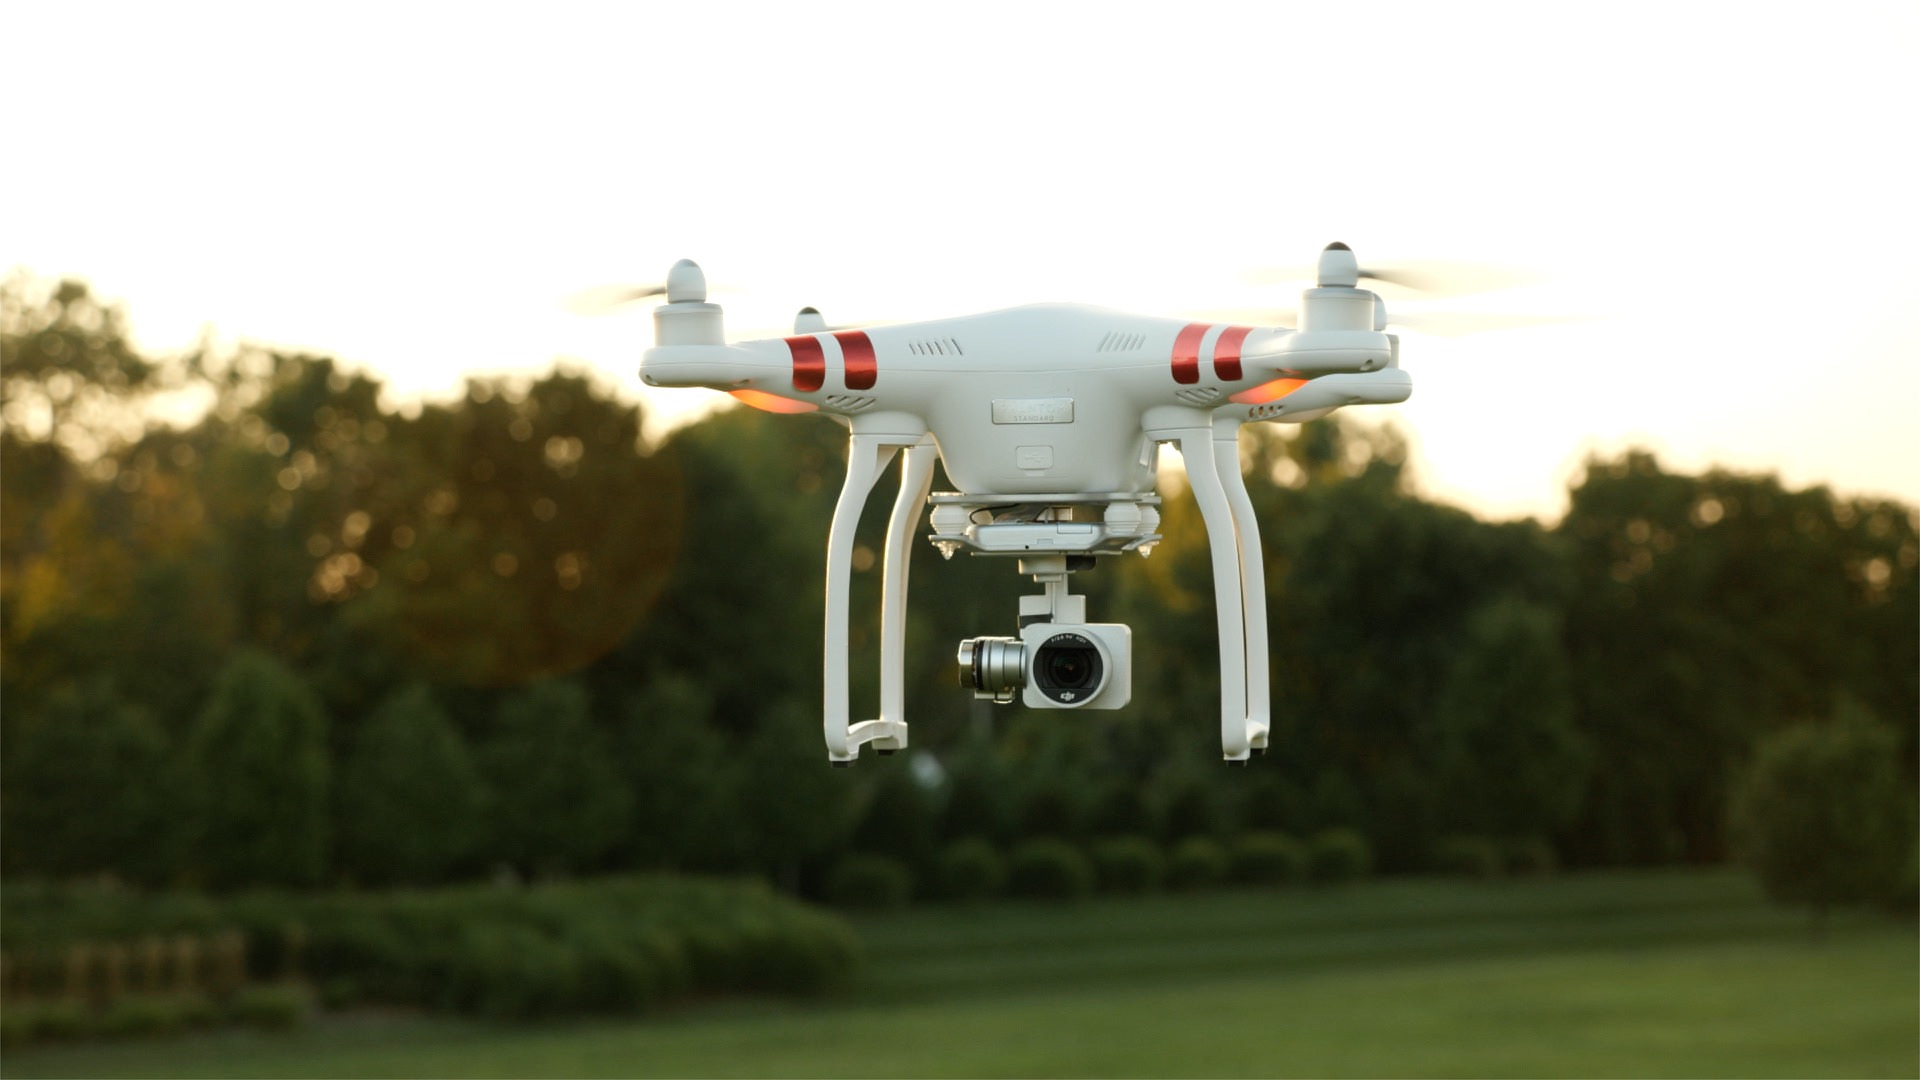 My First Real Drone Experience Dji Phantom 3 Standard Video 9to5toys